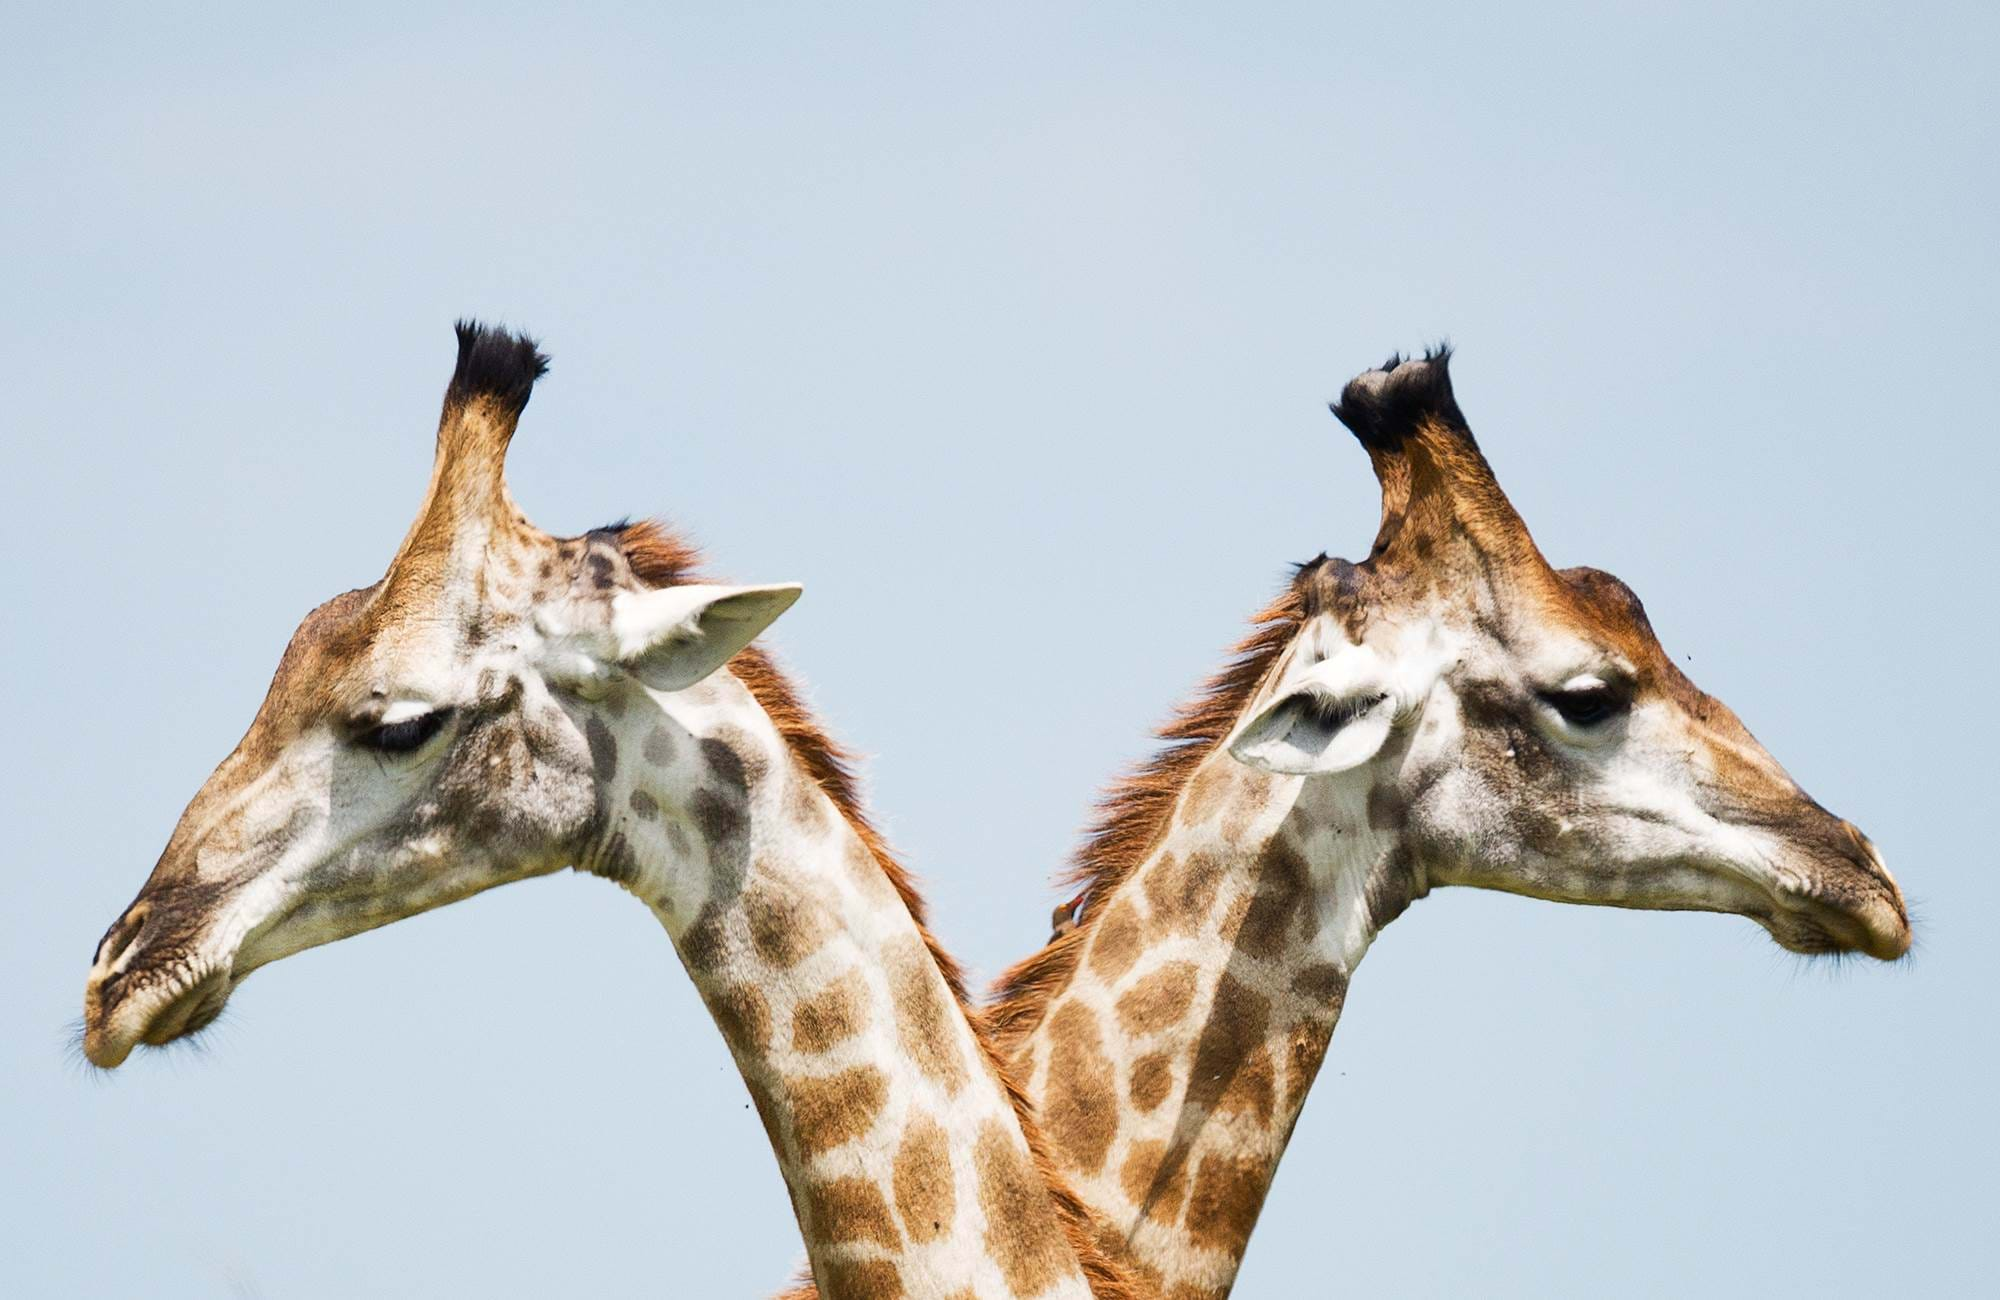 kruger-national-park-two-giraffes-cover